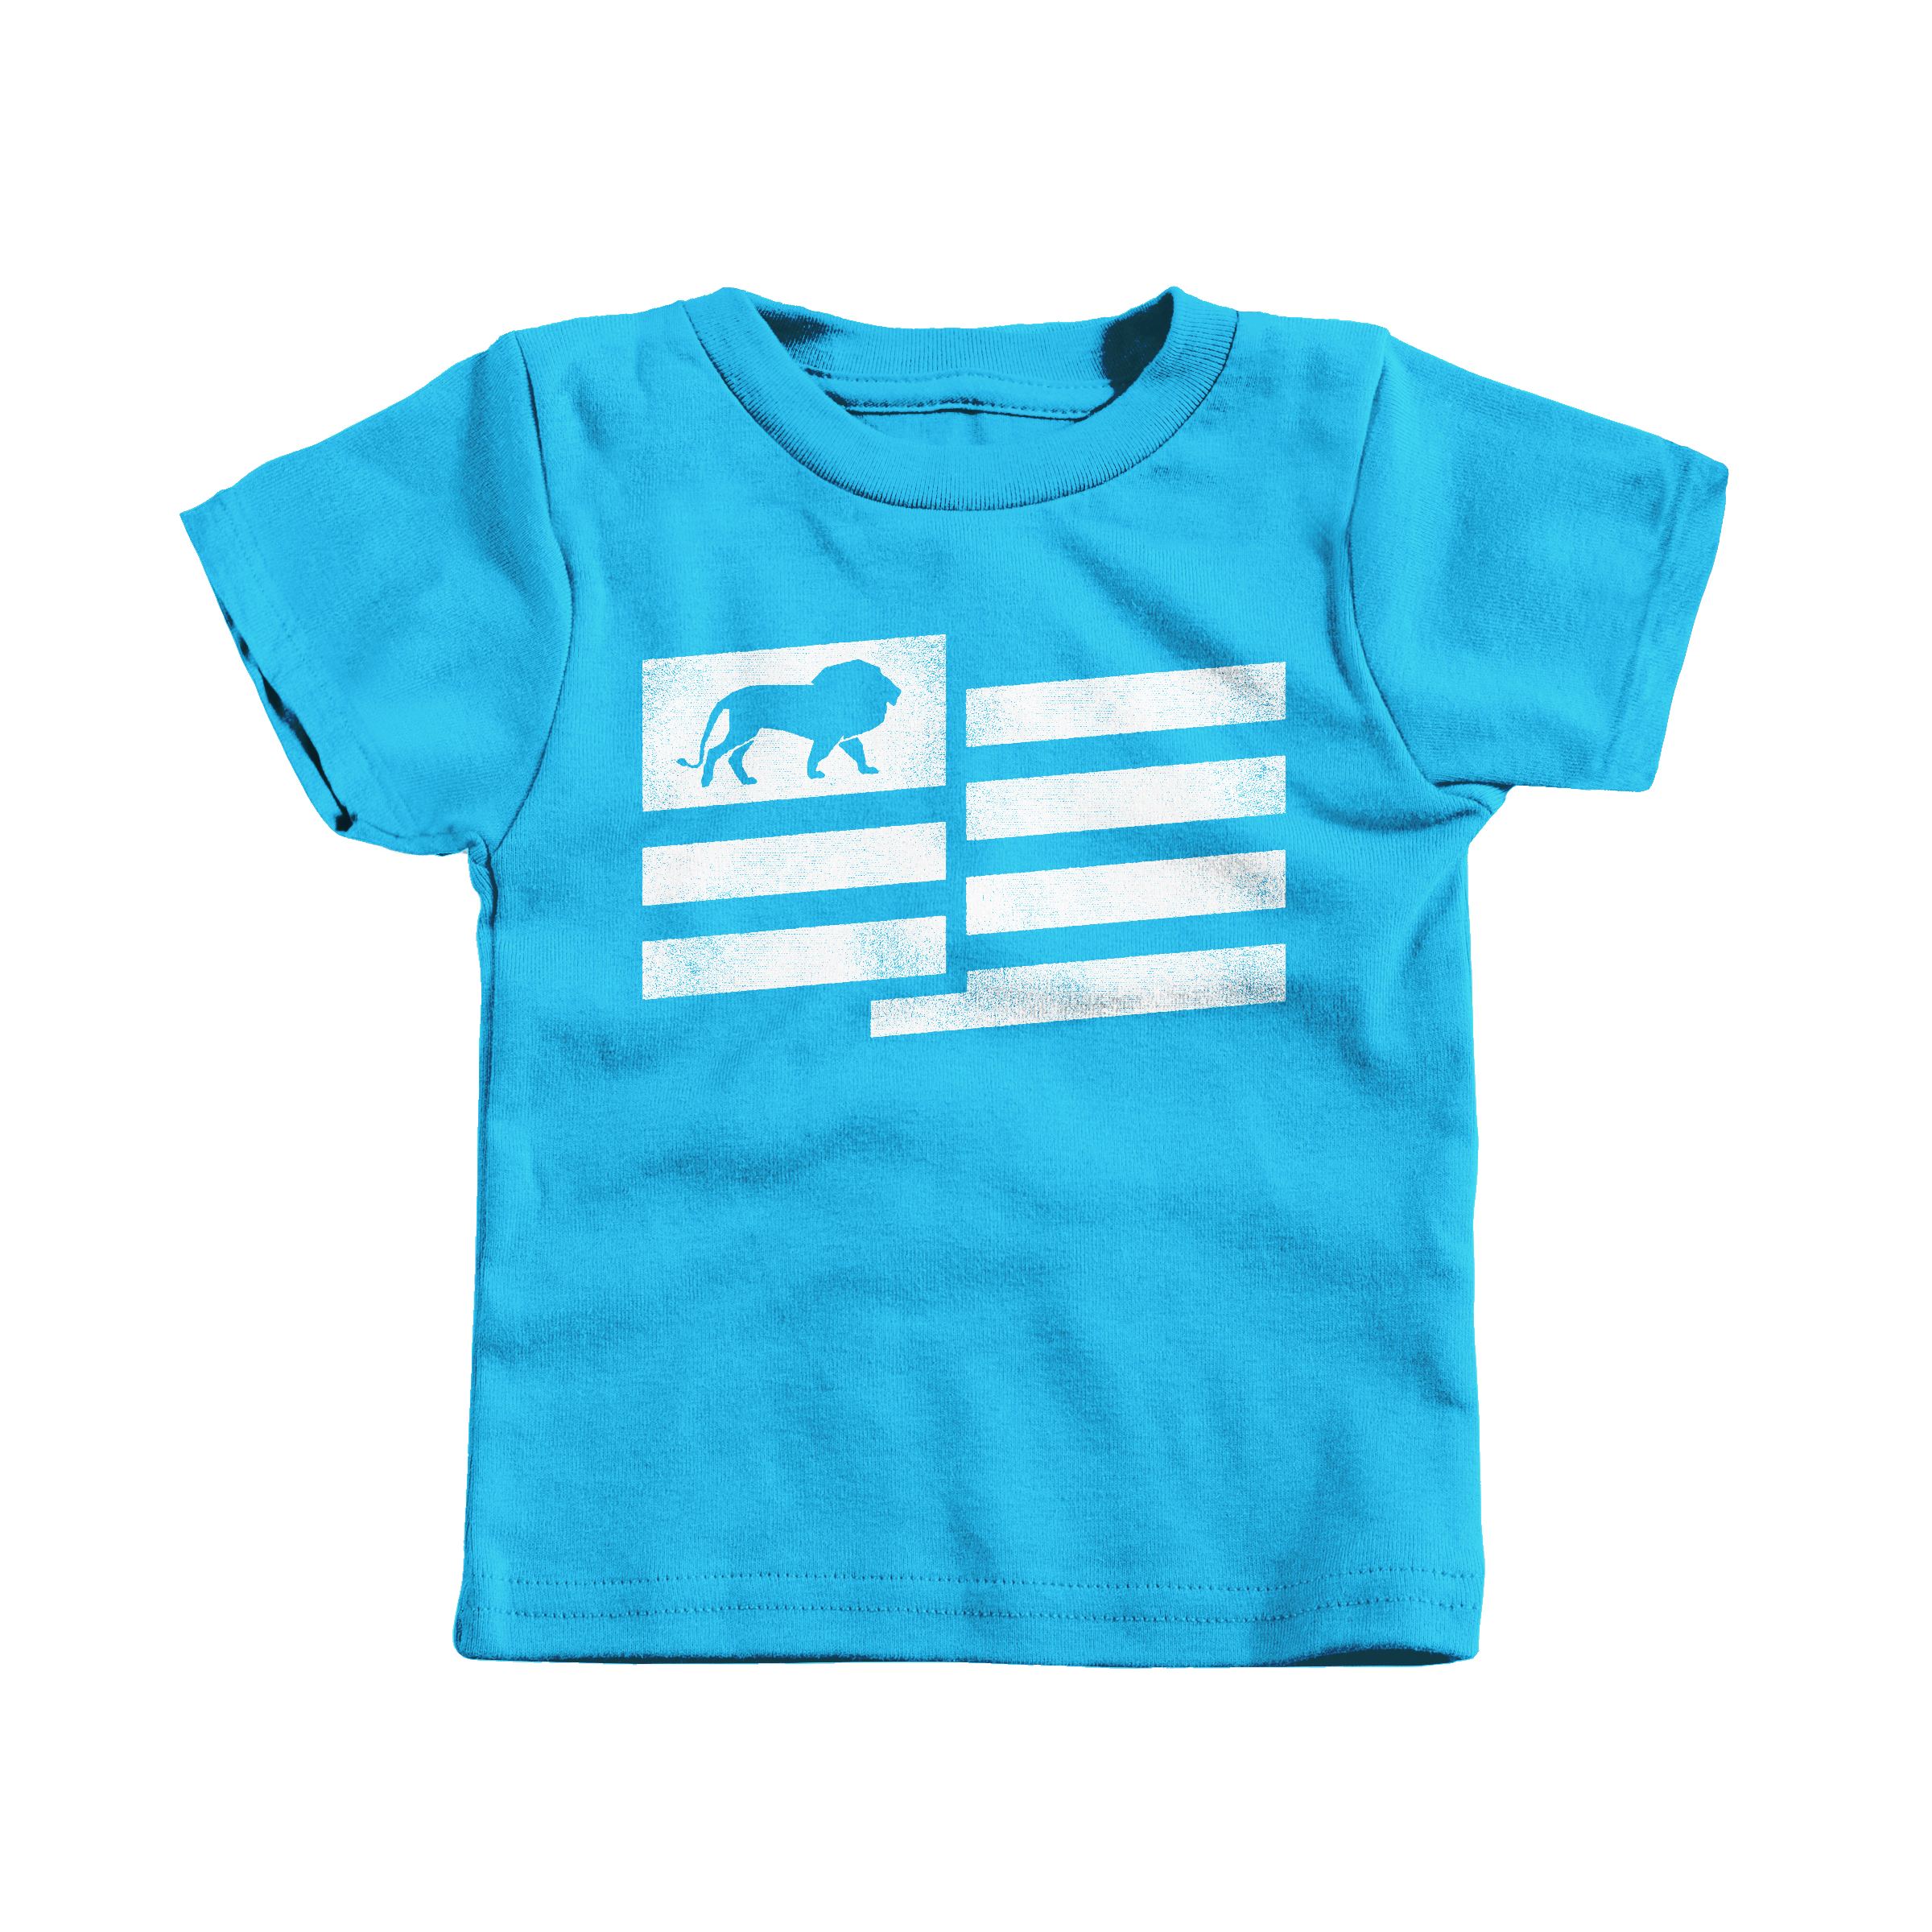 Lion Nation Turquoise (T-Shirt)